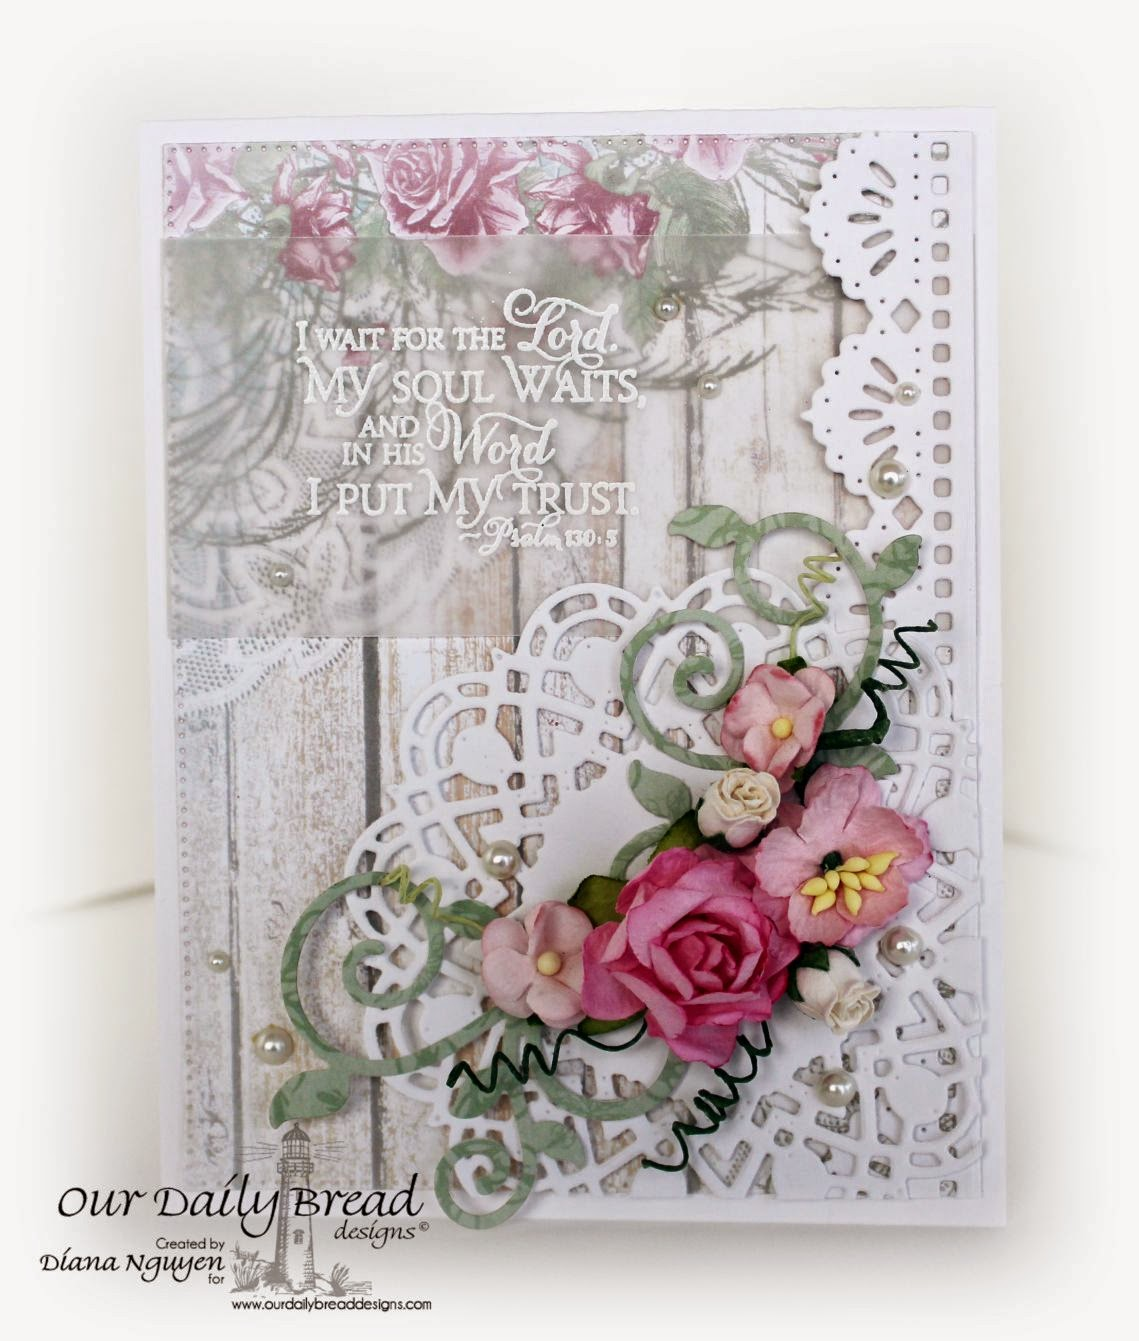 Our Daily Bread Designs, Shabby Chic, Scripture, Diana Nguyen